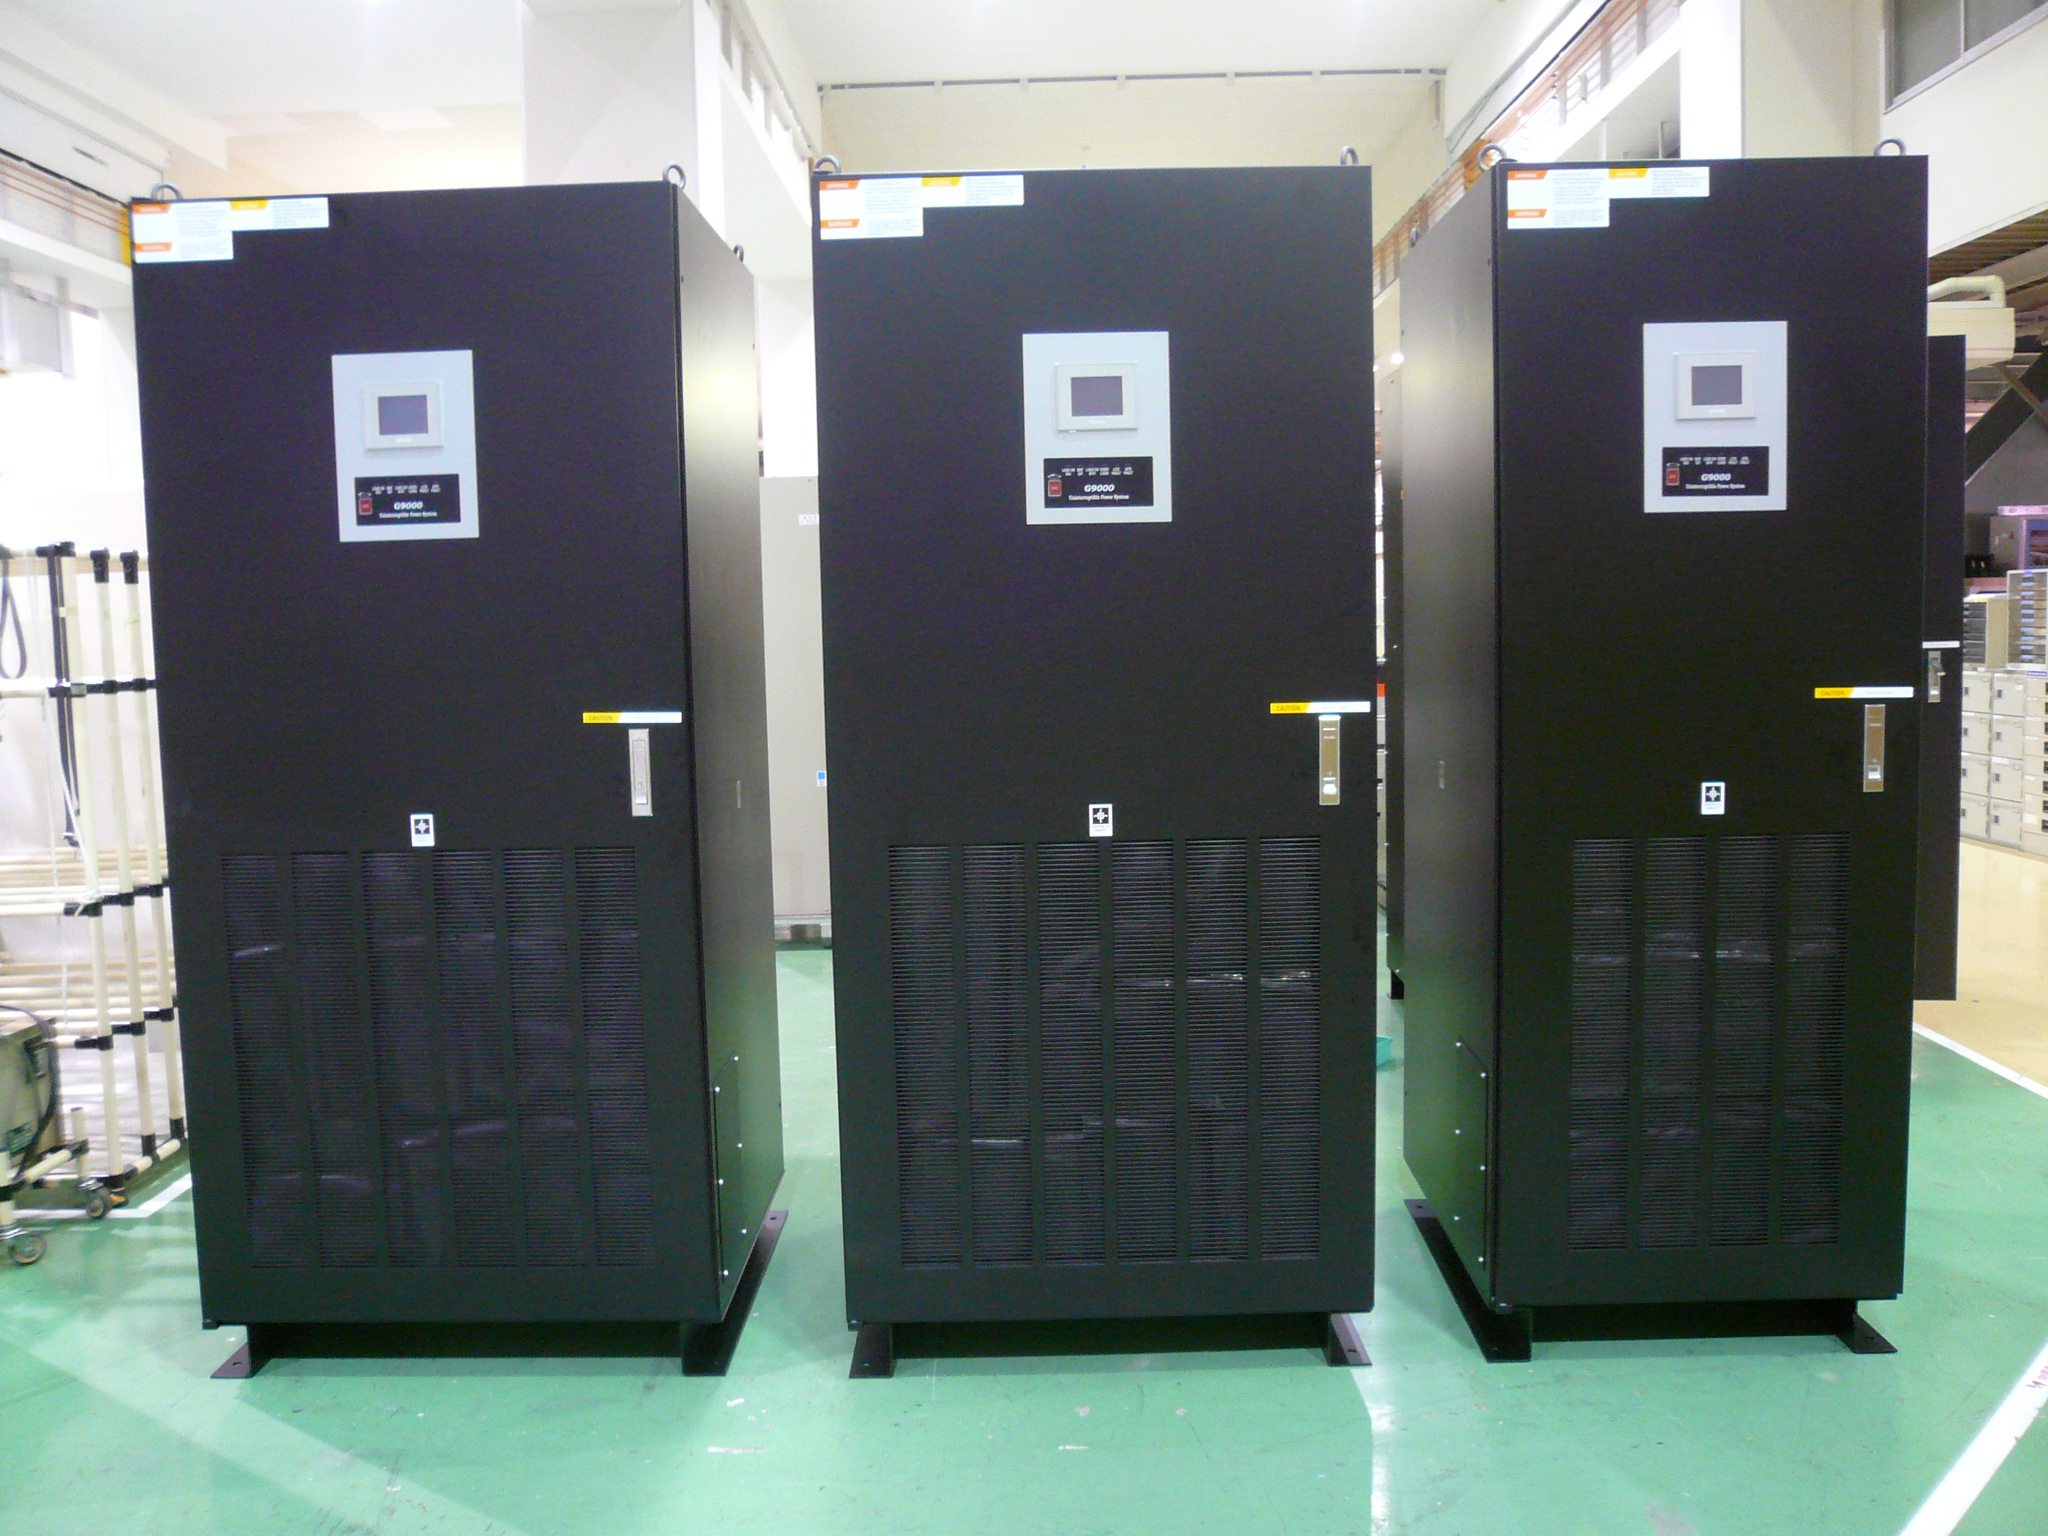 Toshiba Uninterruptible Power Supplies G9000 Series: 225kVA, 160kVA, 100kVA units